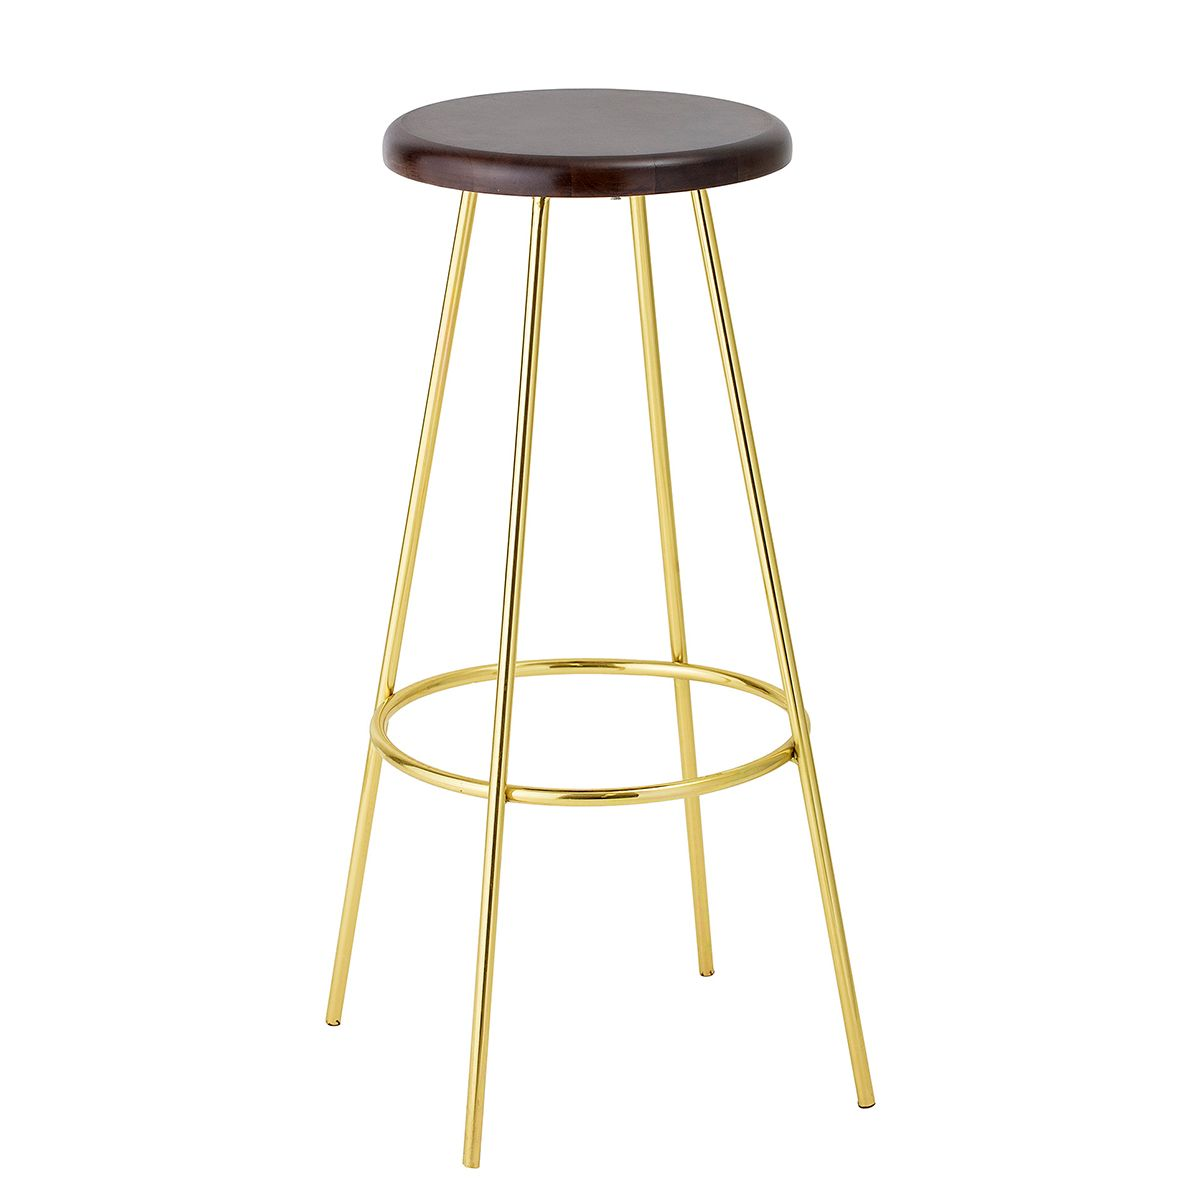 Tabouret de bar en m tal couleur or assise noire - Tabouret de bar couleur ...